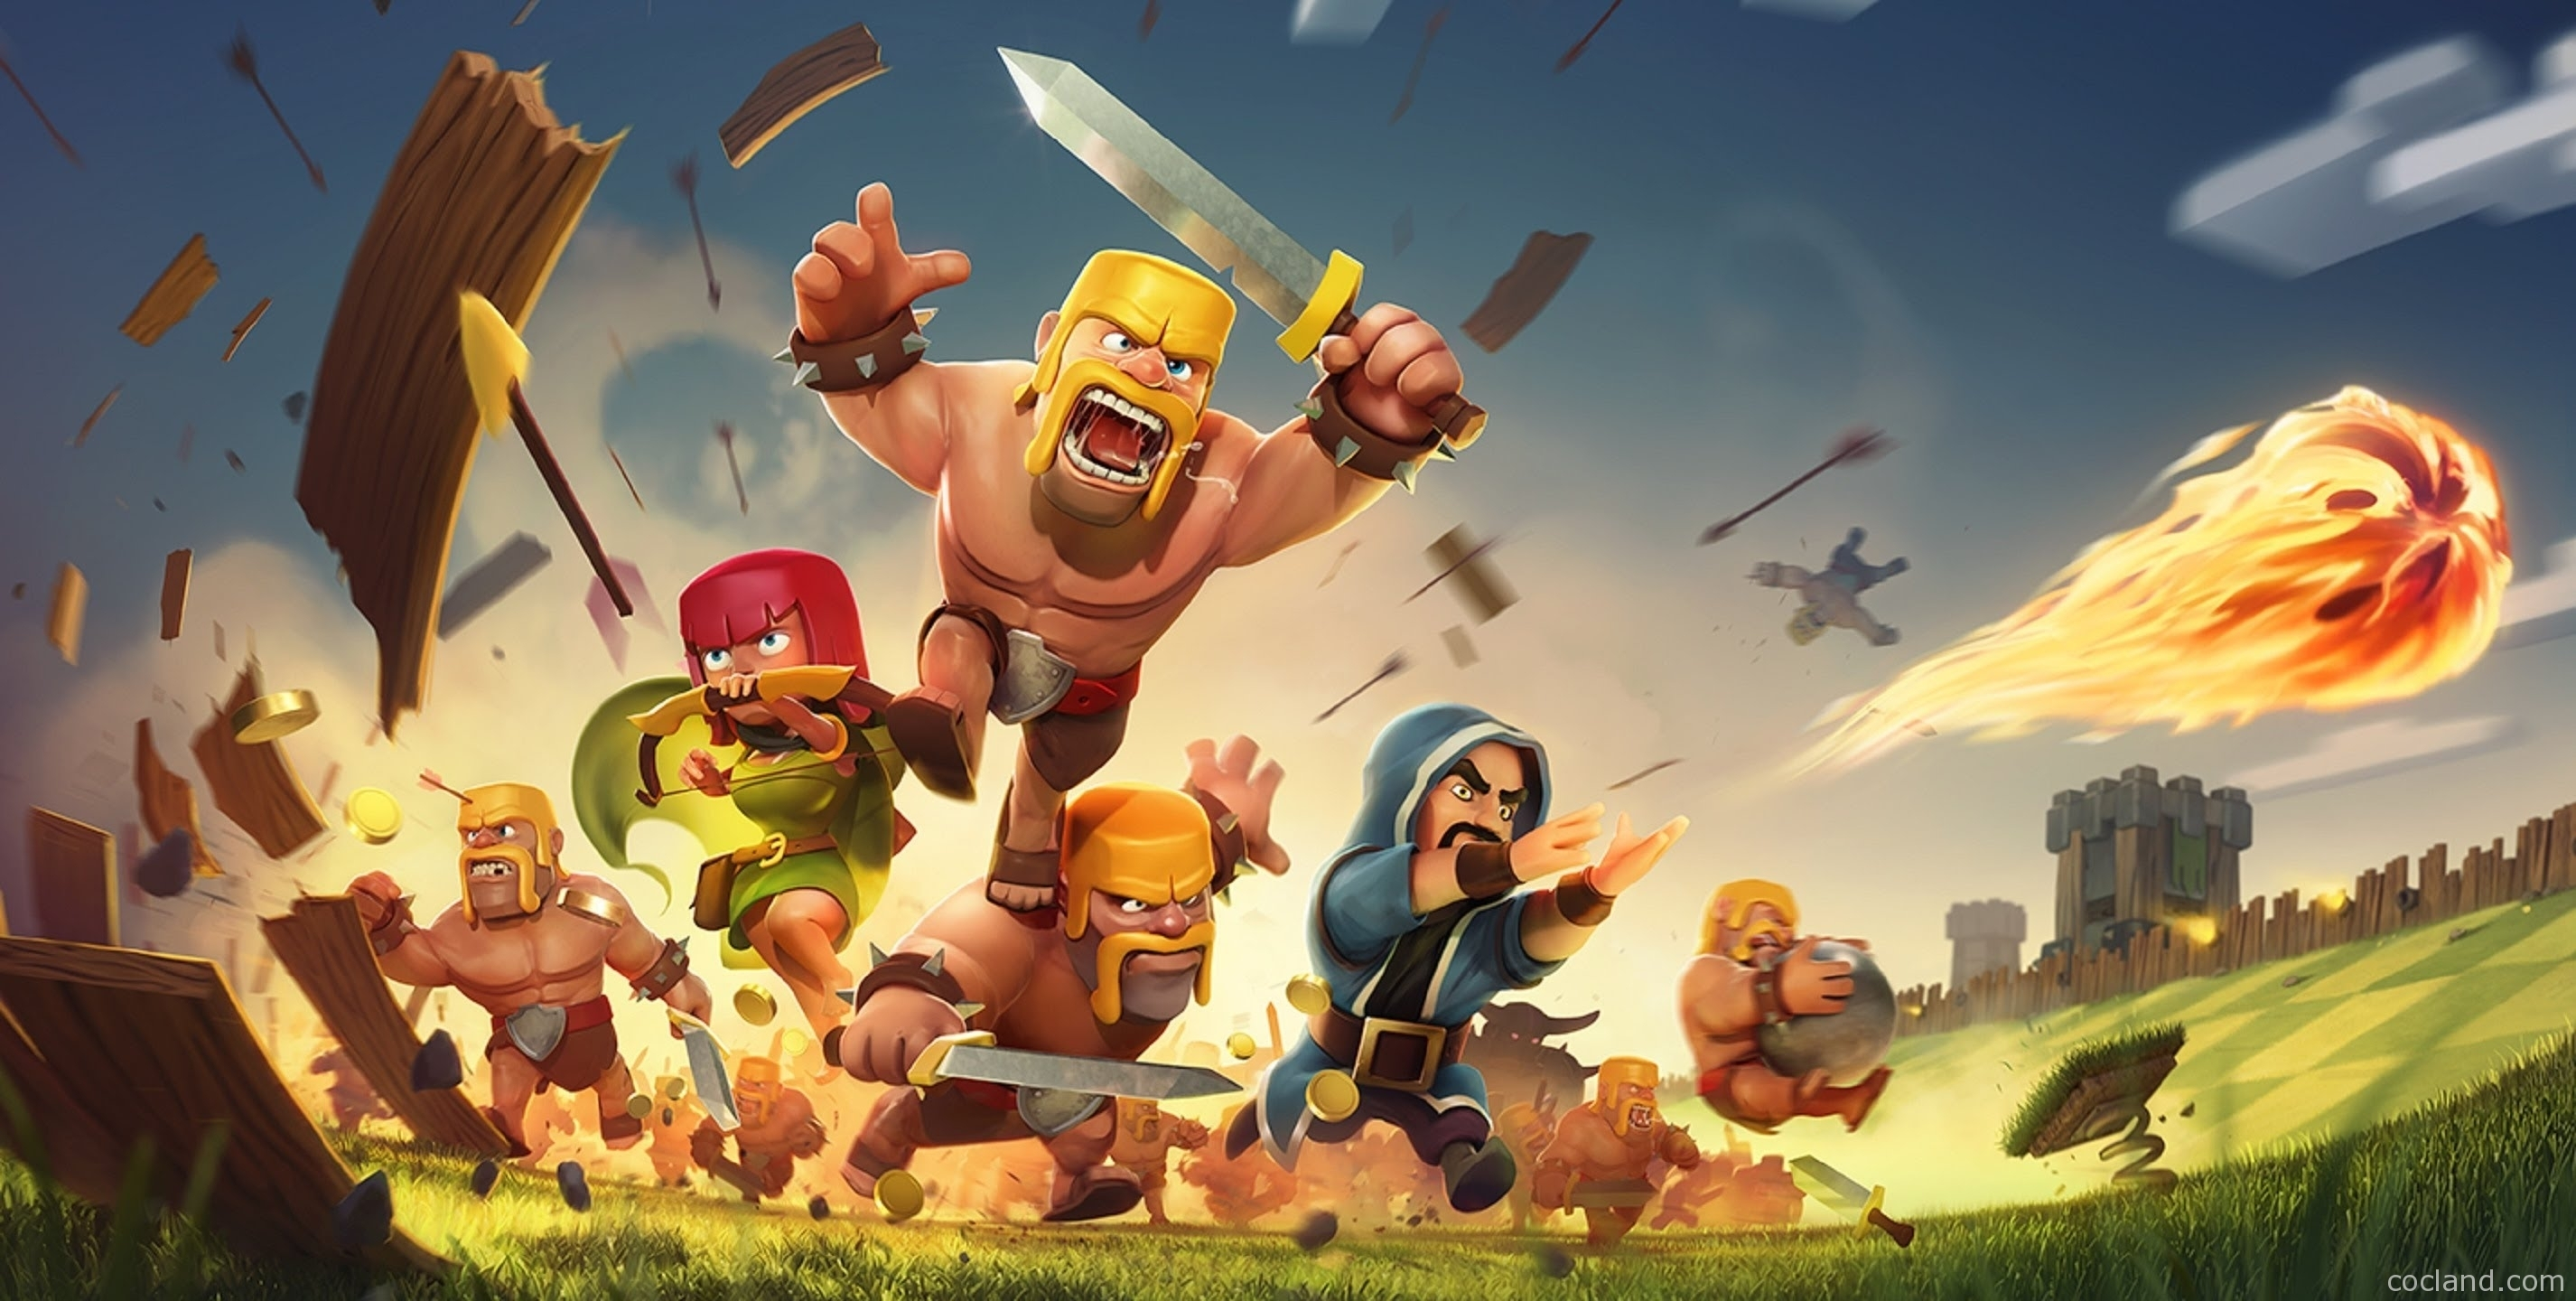 clash of clans wallpaper hd | fotolip rich image and wallpaper